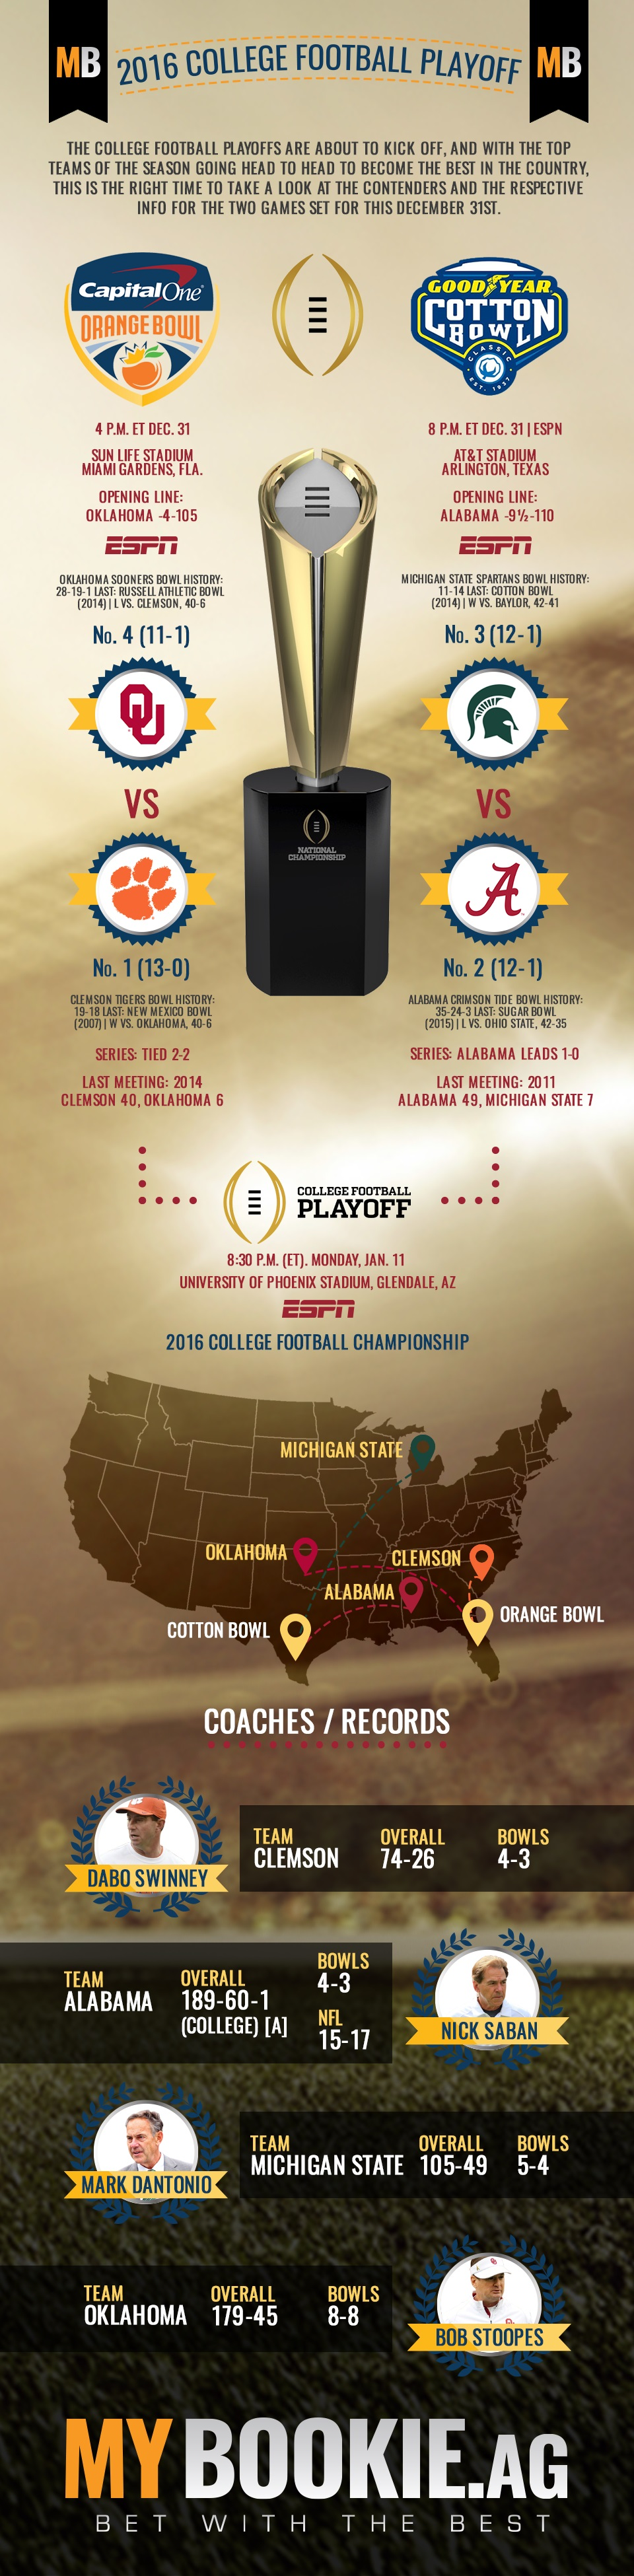 2015 College Football Playoffs Infographic